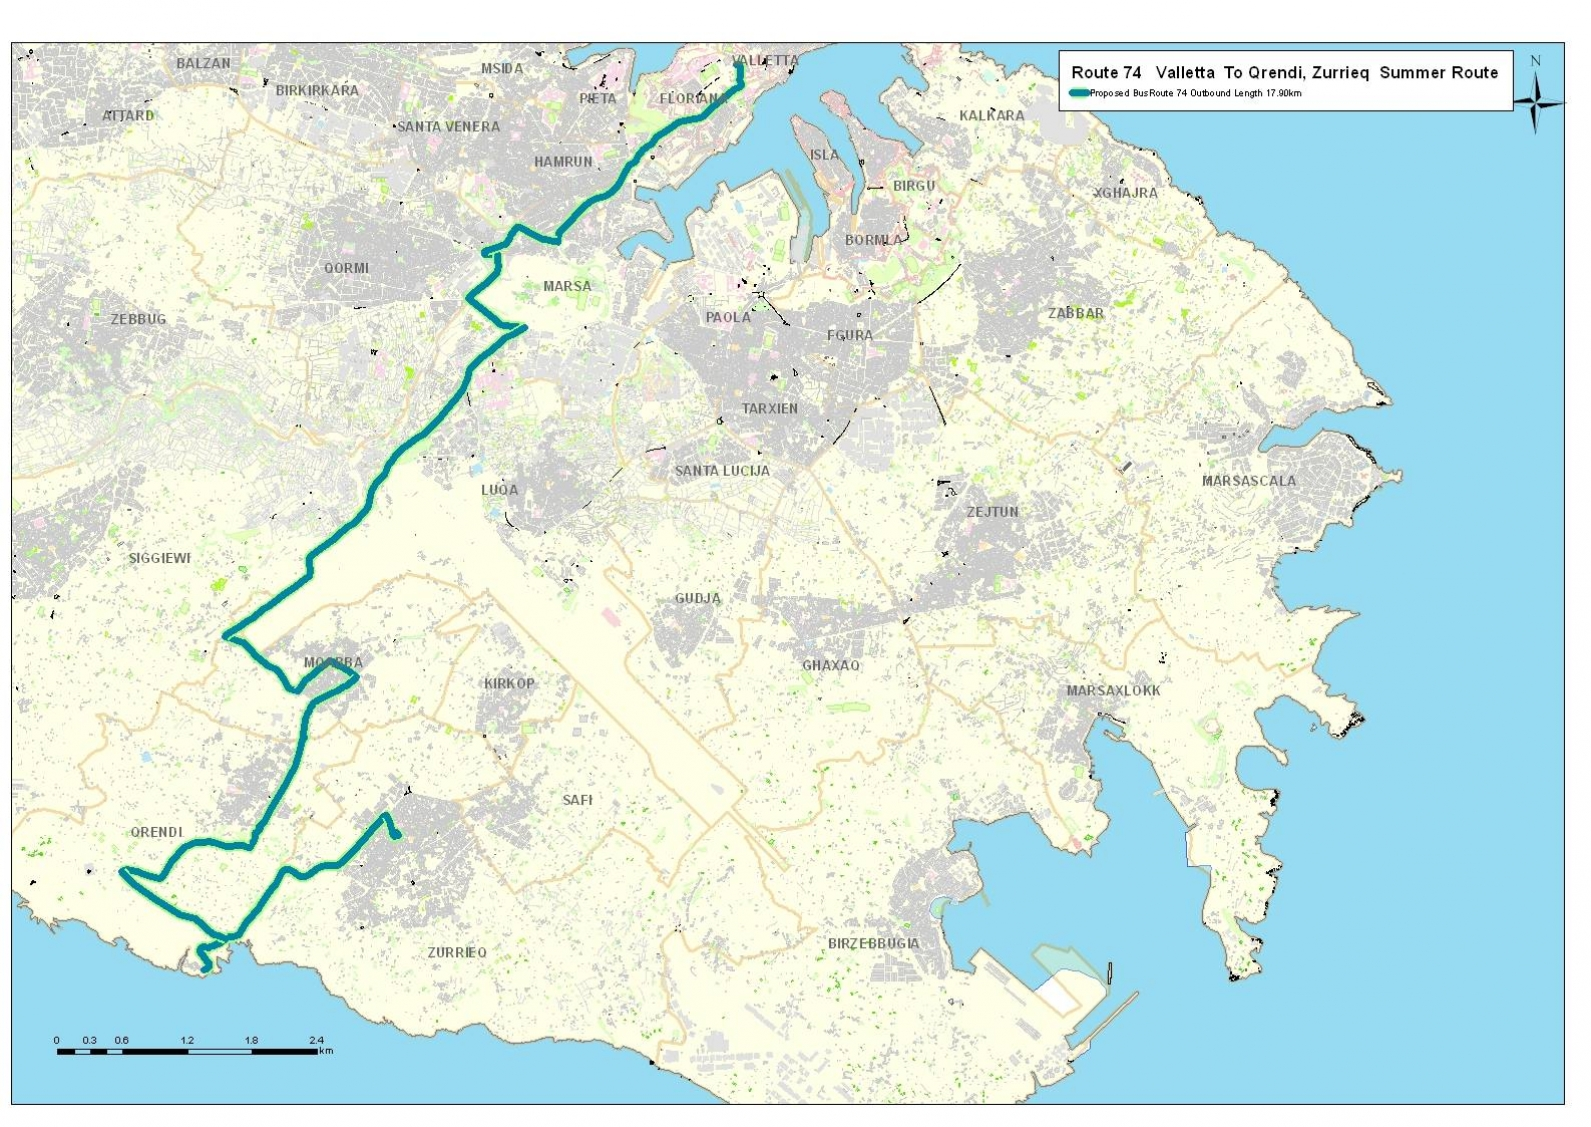 Land-current-network-routes-and-schedules-Summer-routes-5